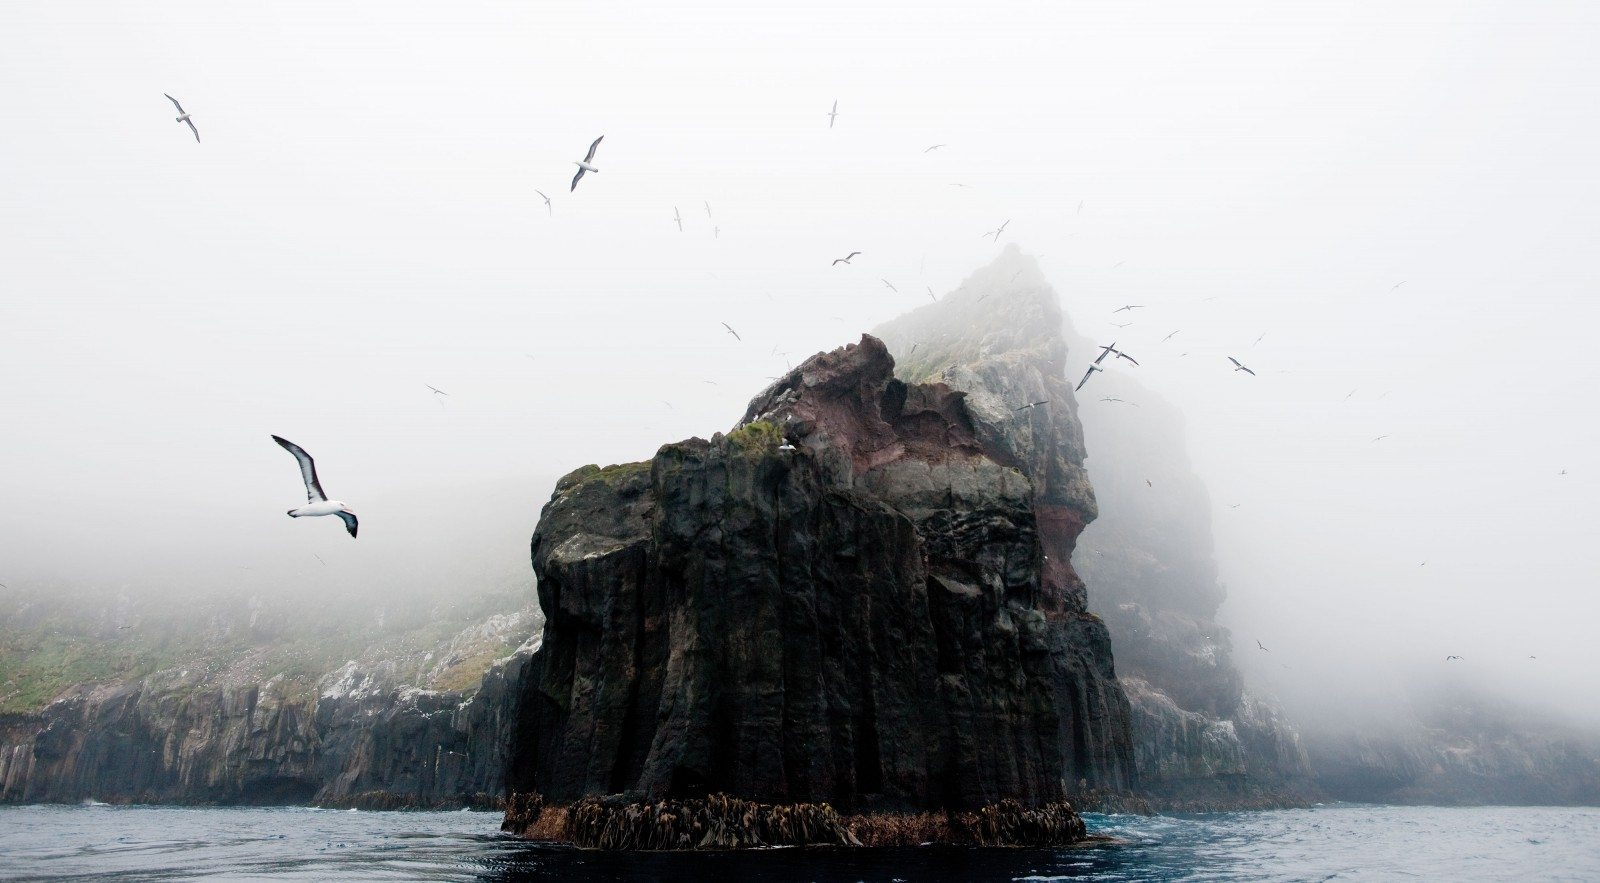 Ramparts of columnar basalt fringed with bull kelp and topped with tussock loom through the fog on a rare still day at Campbell Island/Motu Ihupuku. Such austere and weathered places—more often wave- and wind-lashed than calm—are the favoured rookeries of the Campbell albatross, a medium-sized albatross or mollymawk readily distinguished by the yellow iris of its eye. Three other albatross species breed on Campbell Island, including the giant-sized southern royal and Antipodean albatross, with their awe-inspiring three-metre wingspans. During the 1970s, large numbers of Campbell albatrosses were drowned through interacting with the tuna longline fishery, but as that fish stock has declined, and fishing effort has slackened, albatross numbers have increased. Even so, the species is still considered vulnerable as it breeds only on Campbell Island and is therefore susceptible to environmental change or damage.